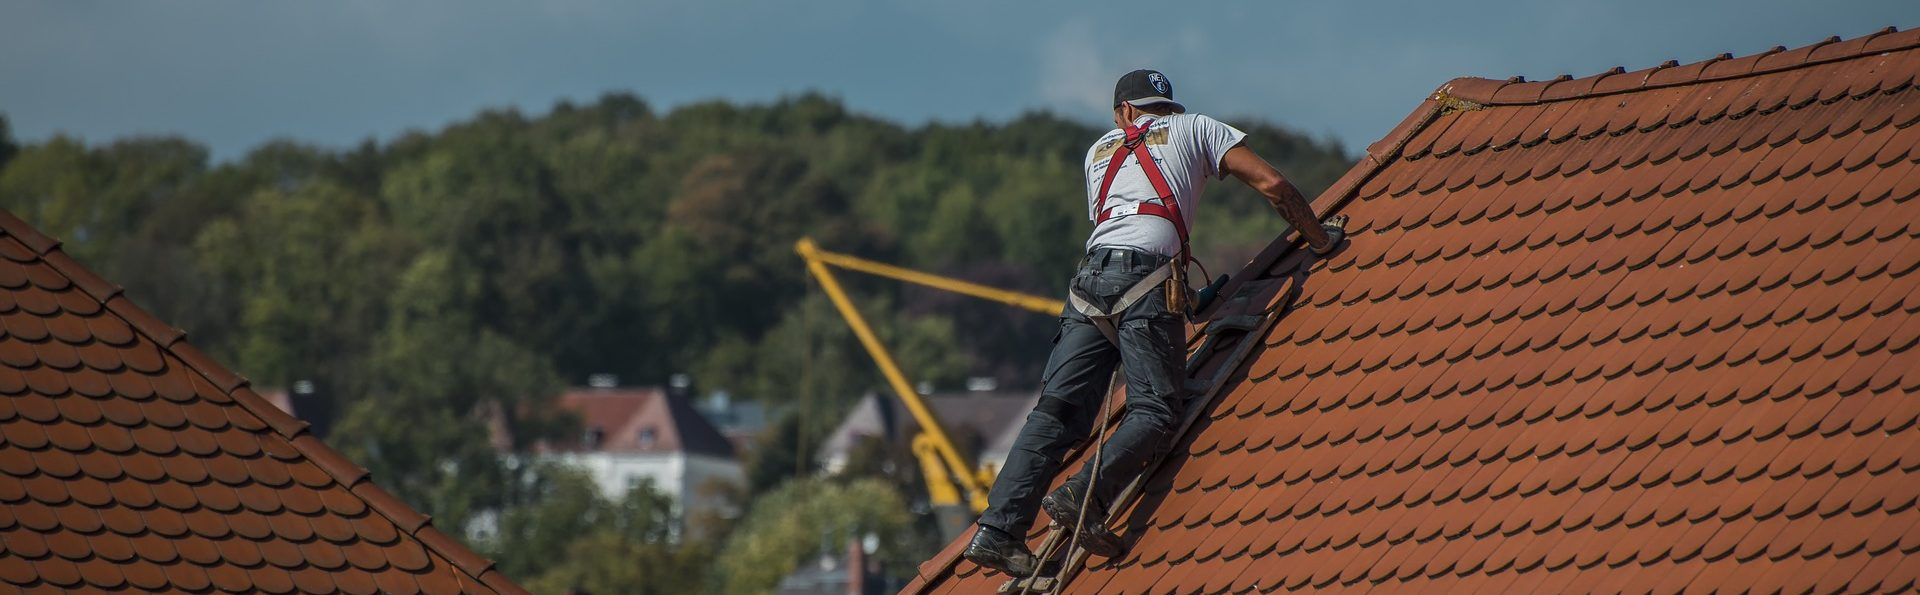 Jq Roofing